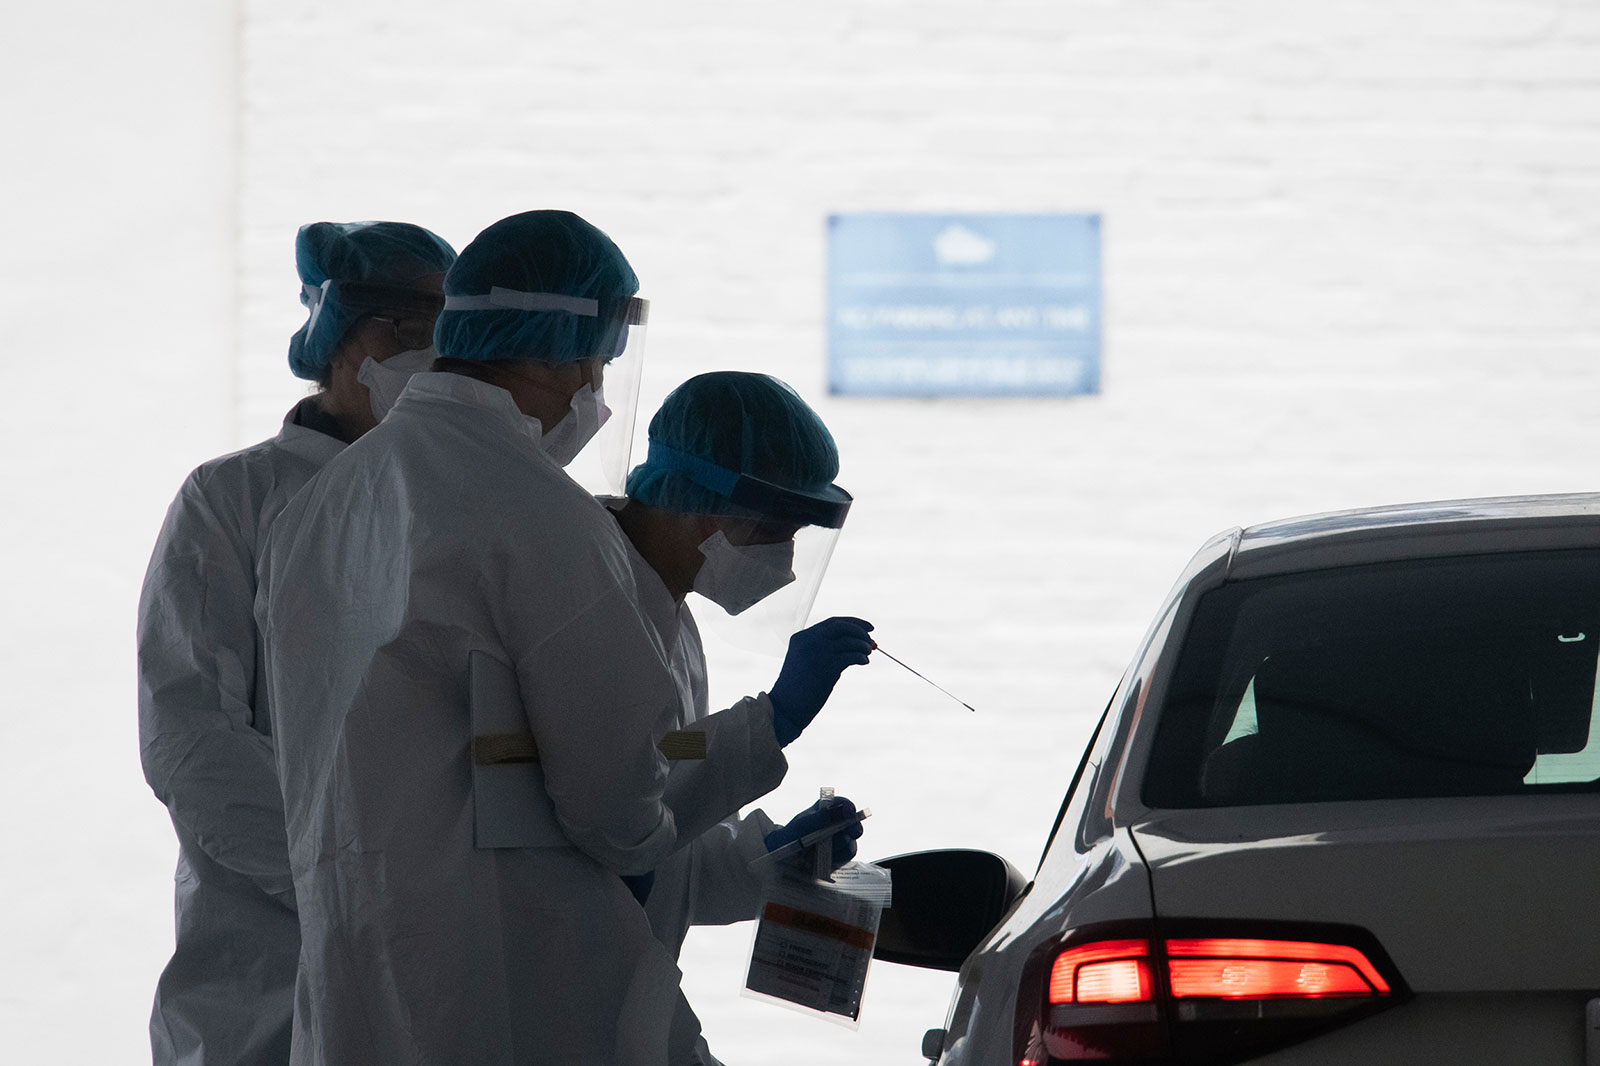 A healthcare worker administers a coronavirus test at a drive-through testing facility at George Washington University in Washington, DC, last month.